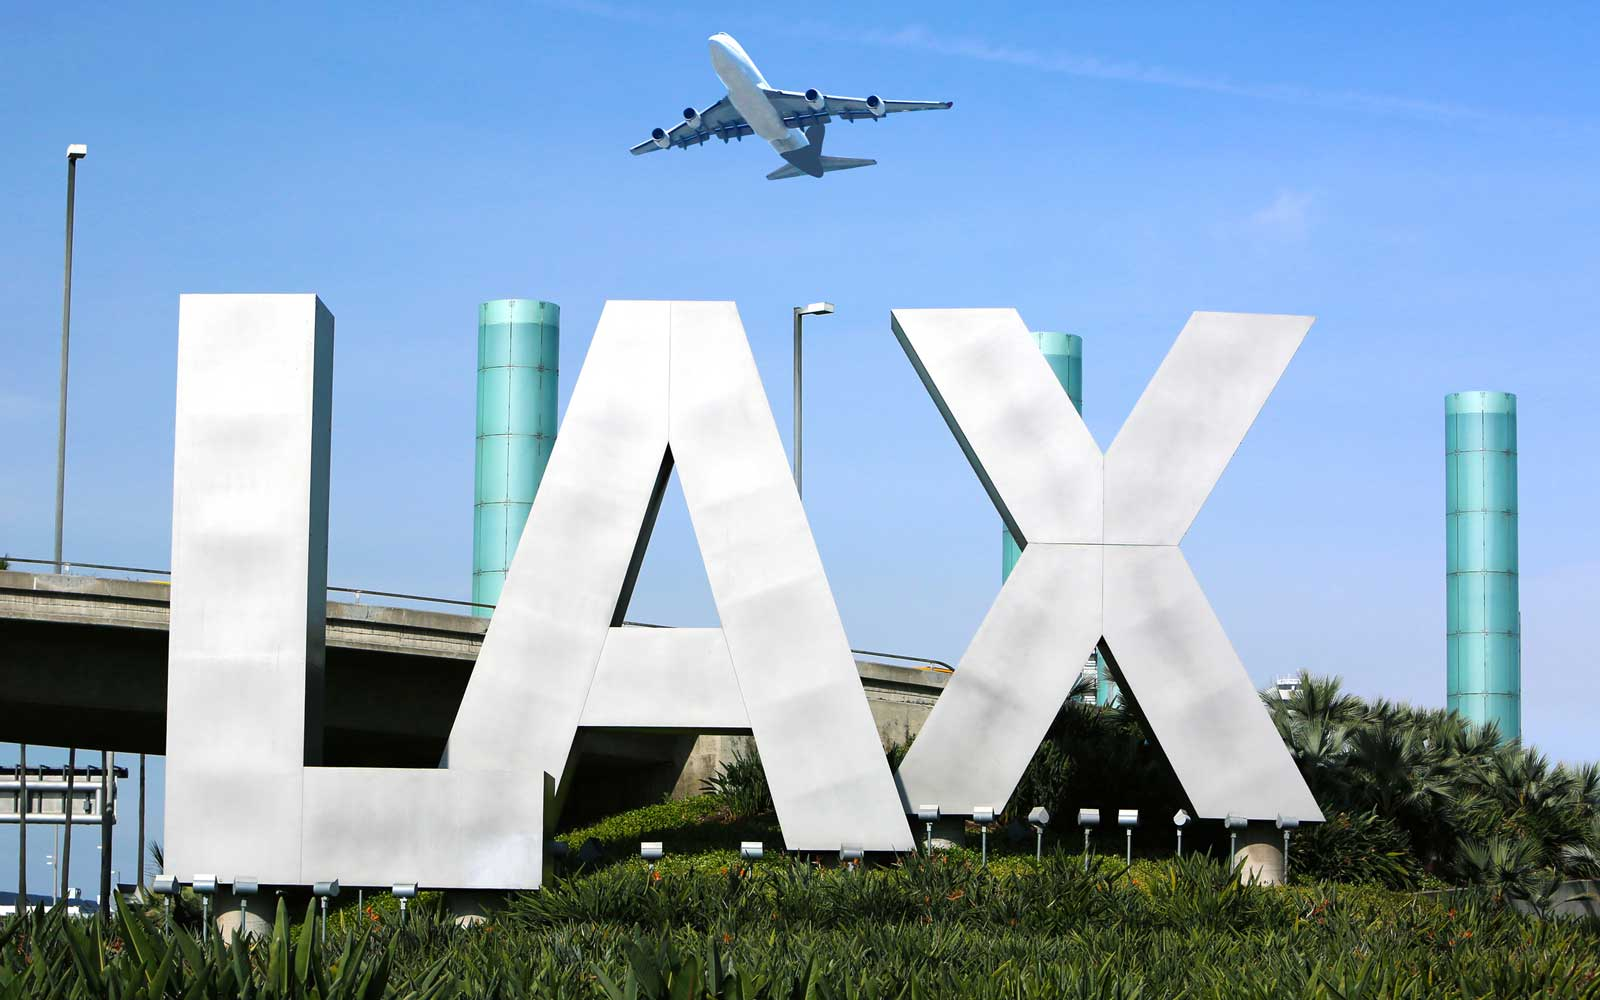 Los Angeles Airport Allows Weed